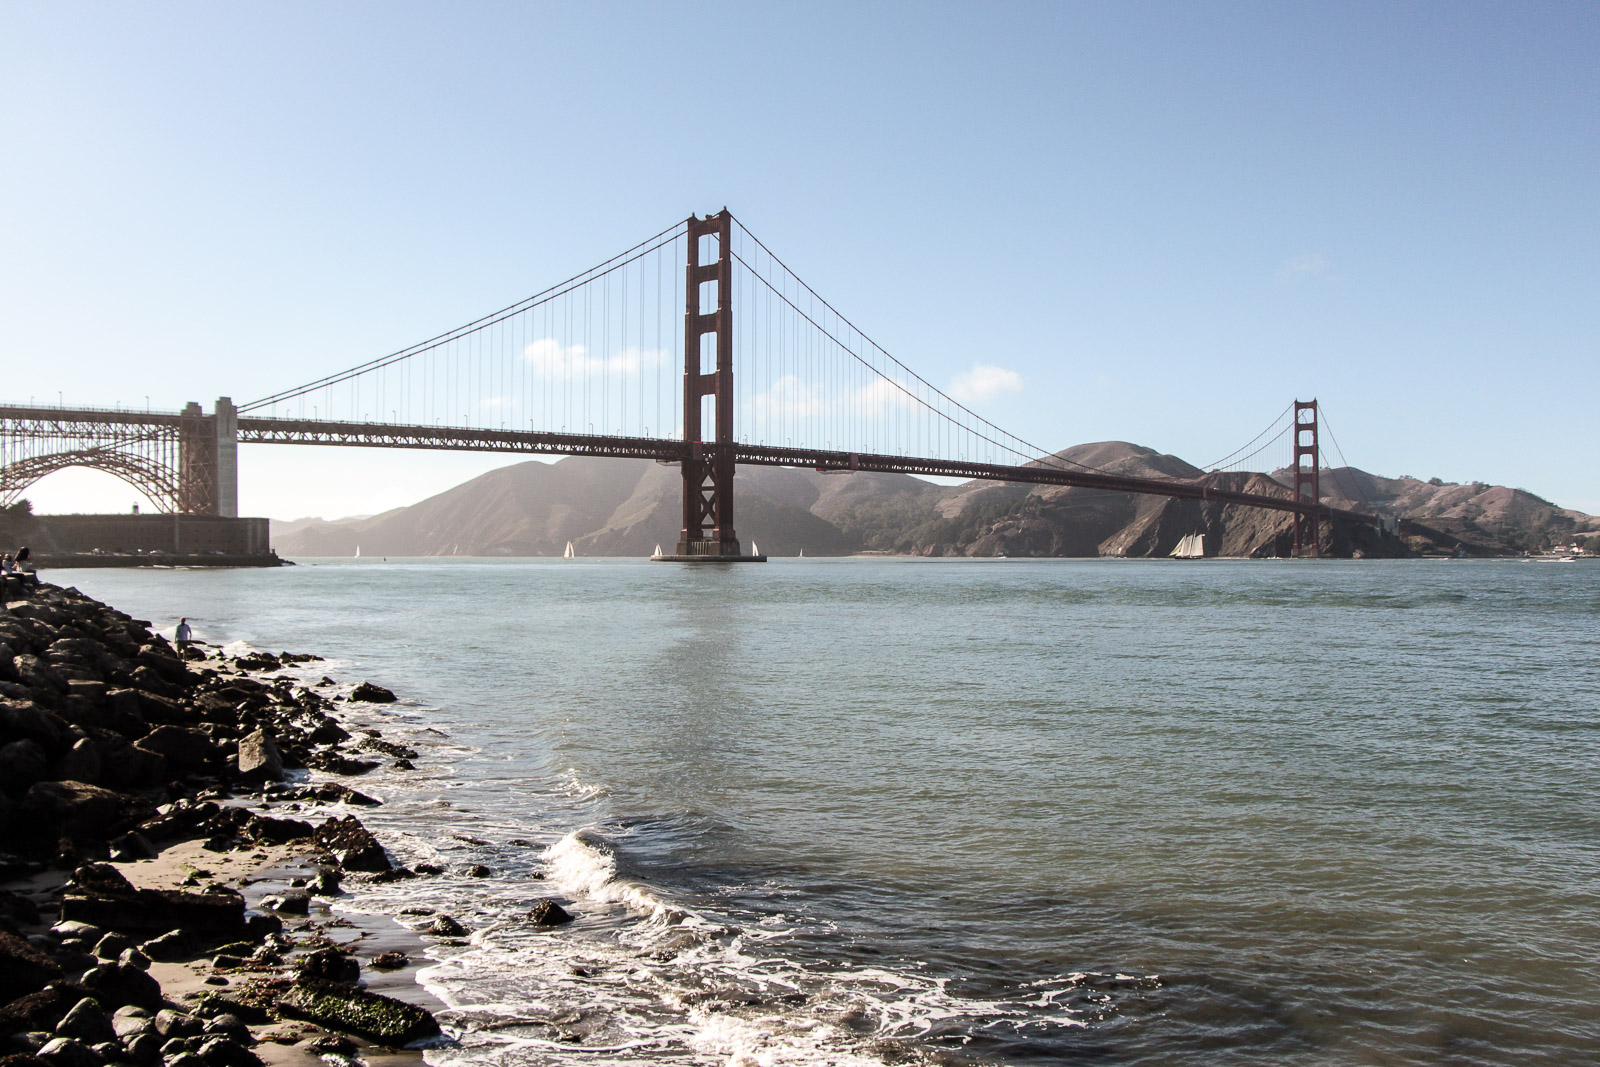 TRAVEL: San Francisco - The City by the Bay, Miss Classy, Travel Blog, Travel Blogger, Reise Blog, Graz, Steiermark, Österreich, Wanderlust, Wayfarer, Reisebericht, USA, Westküste, Roadtrip, Kalifornien, San Francisco, The City by the Bay, Golden Gate Bridge, Lombard Street, Alcatraz, Cable Car, China Town, Twin Peaks, Fishermans Wharf, Pier 39